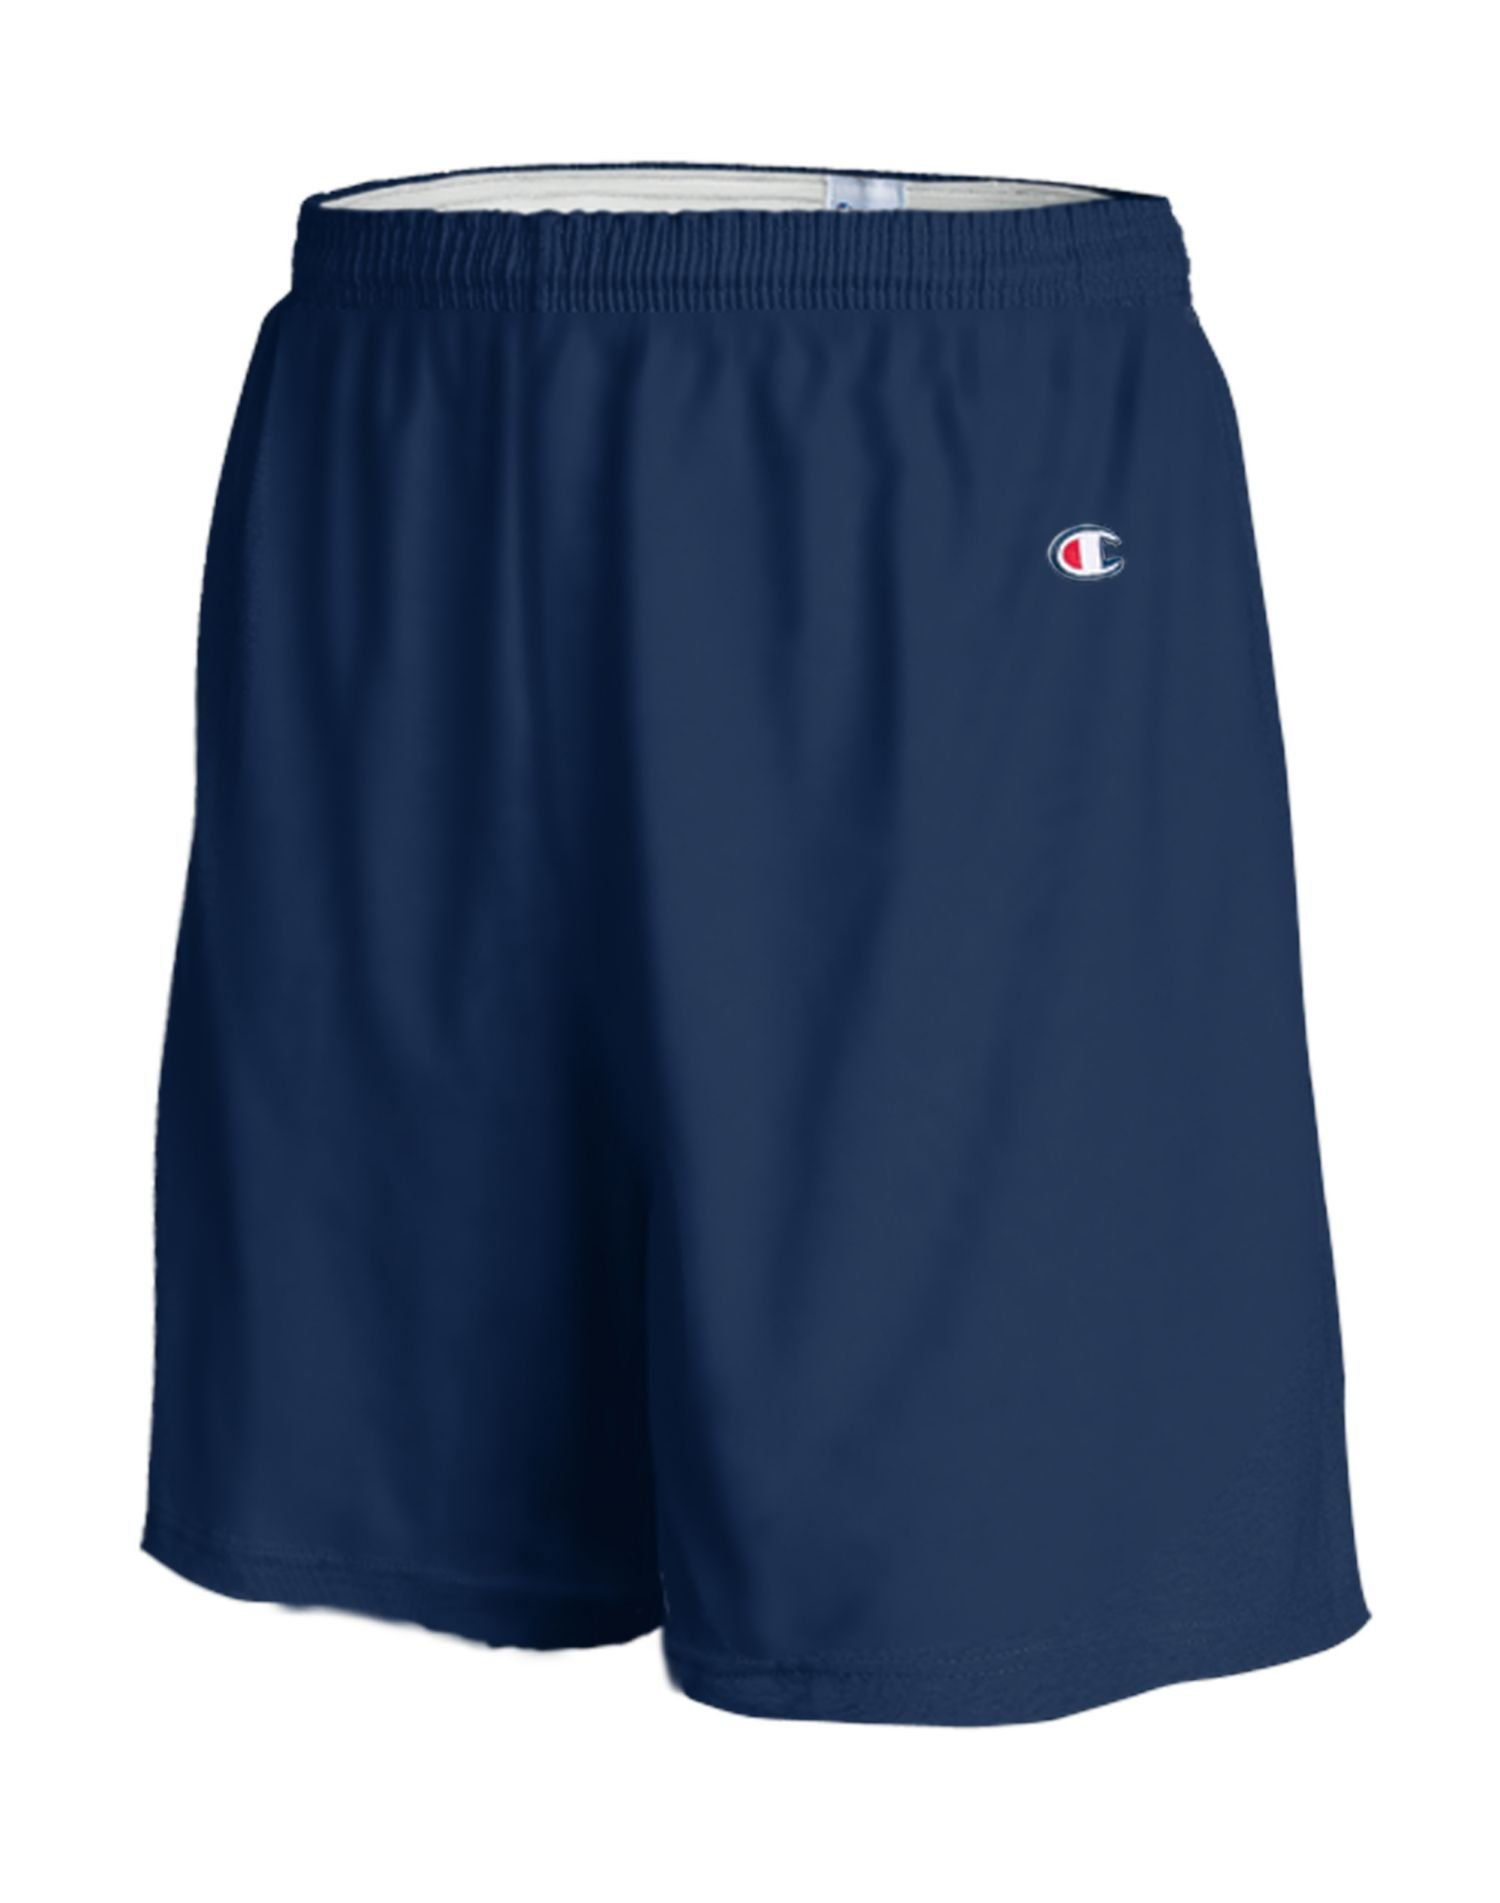 Champion 6.3 oz Cotton Gym Shorts in Navy - Large